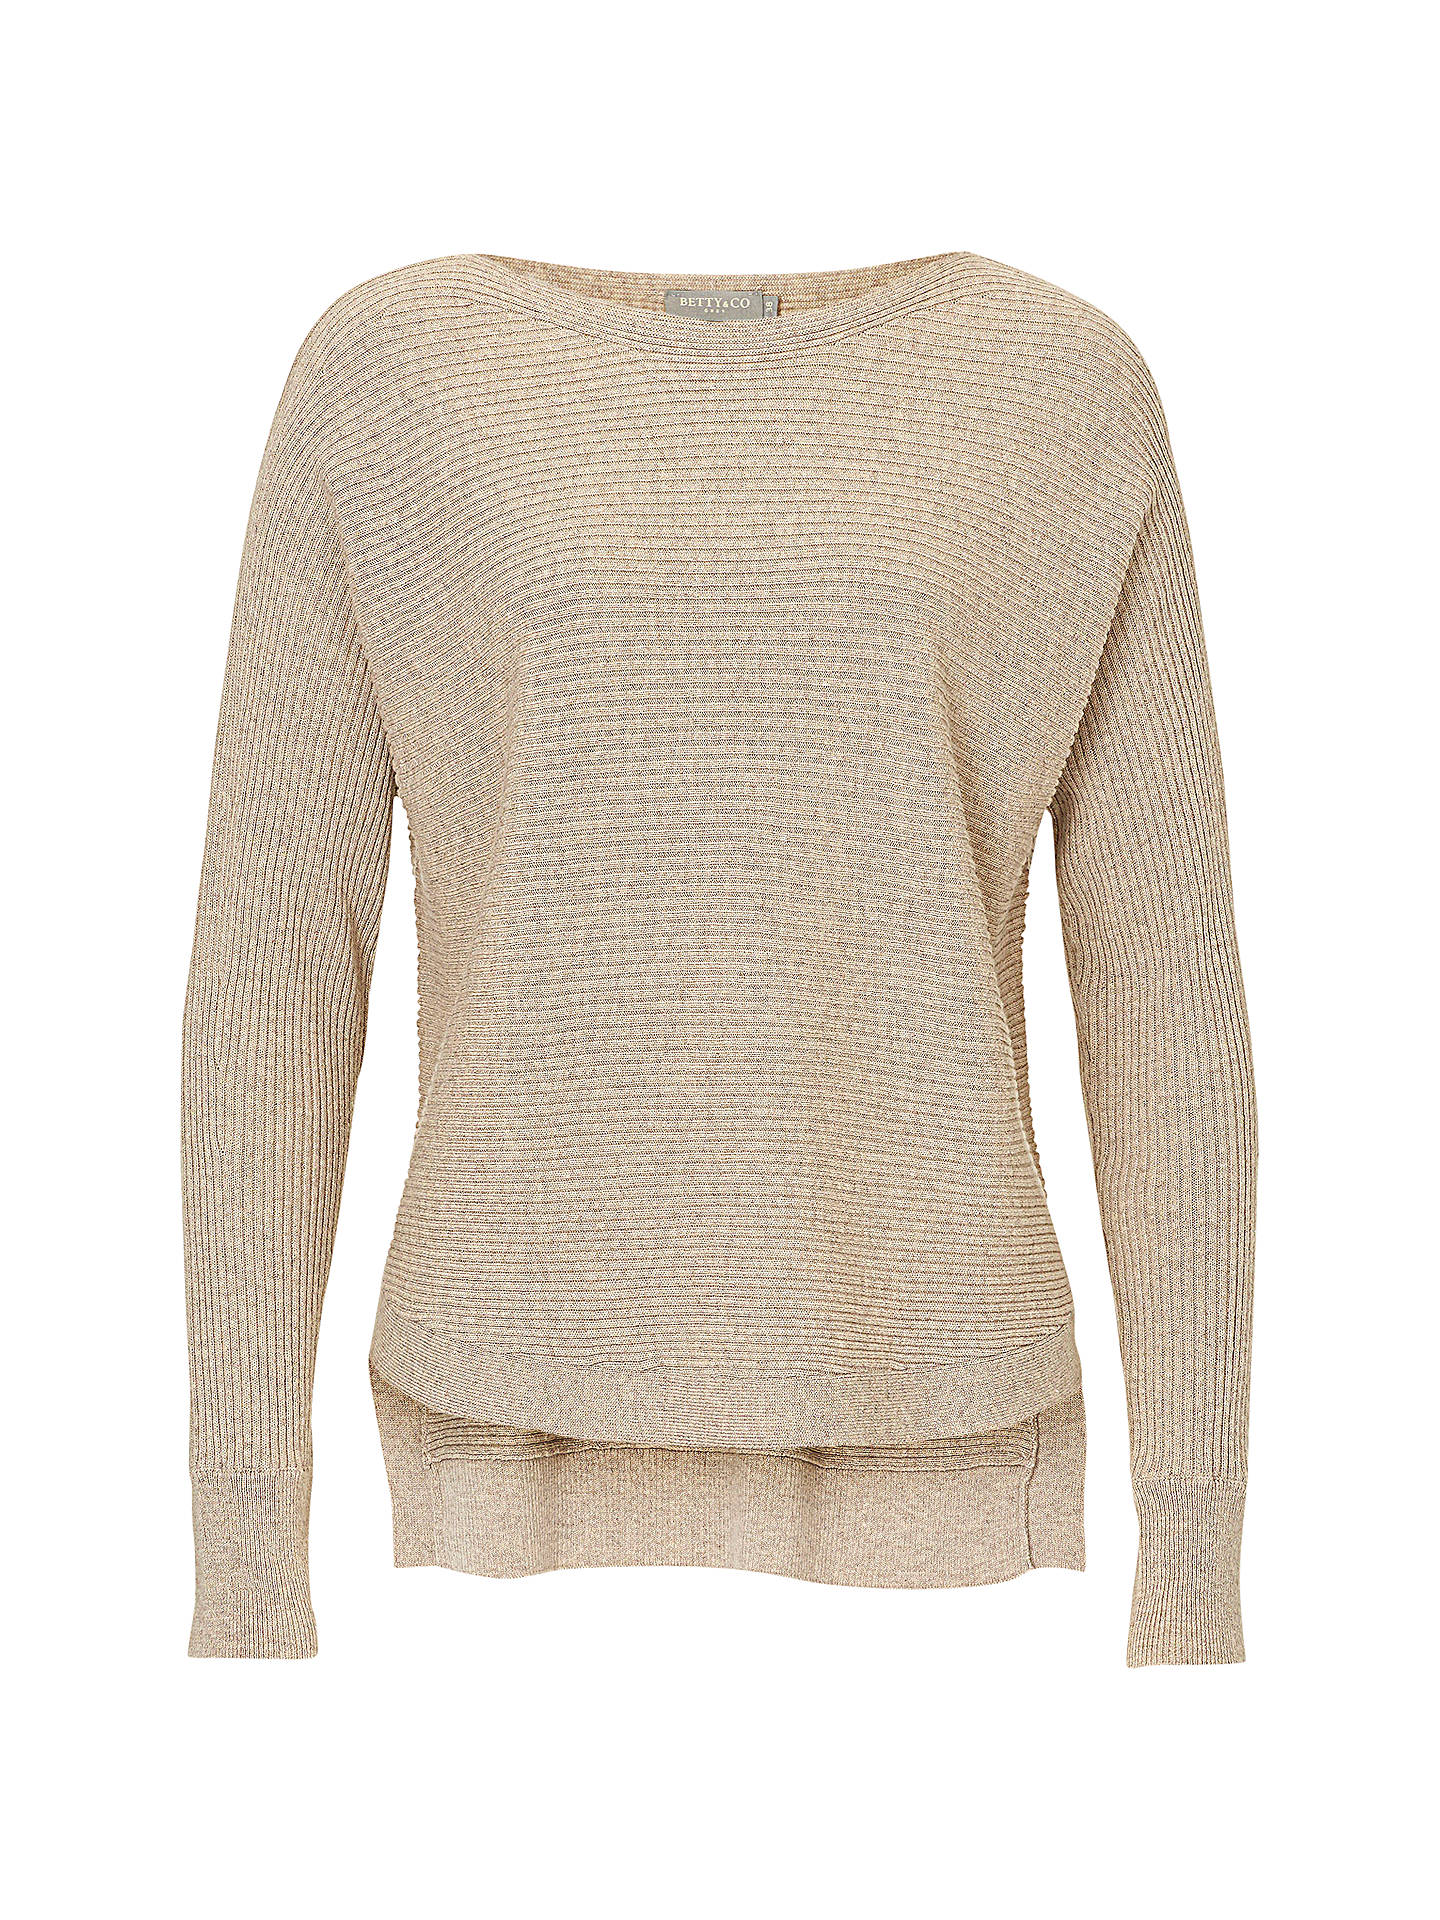 36c6a020b Betty & Co. Ribbed Knit Top, Pumice Stone at John Lewis & Partners